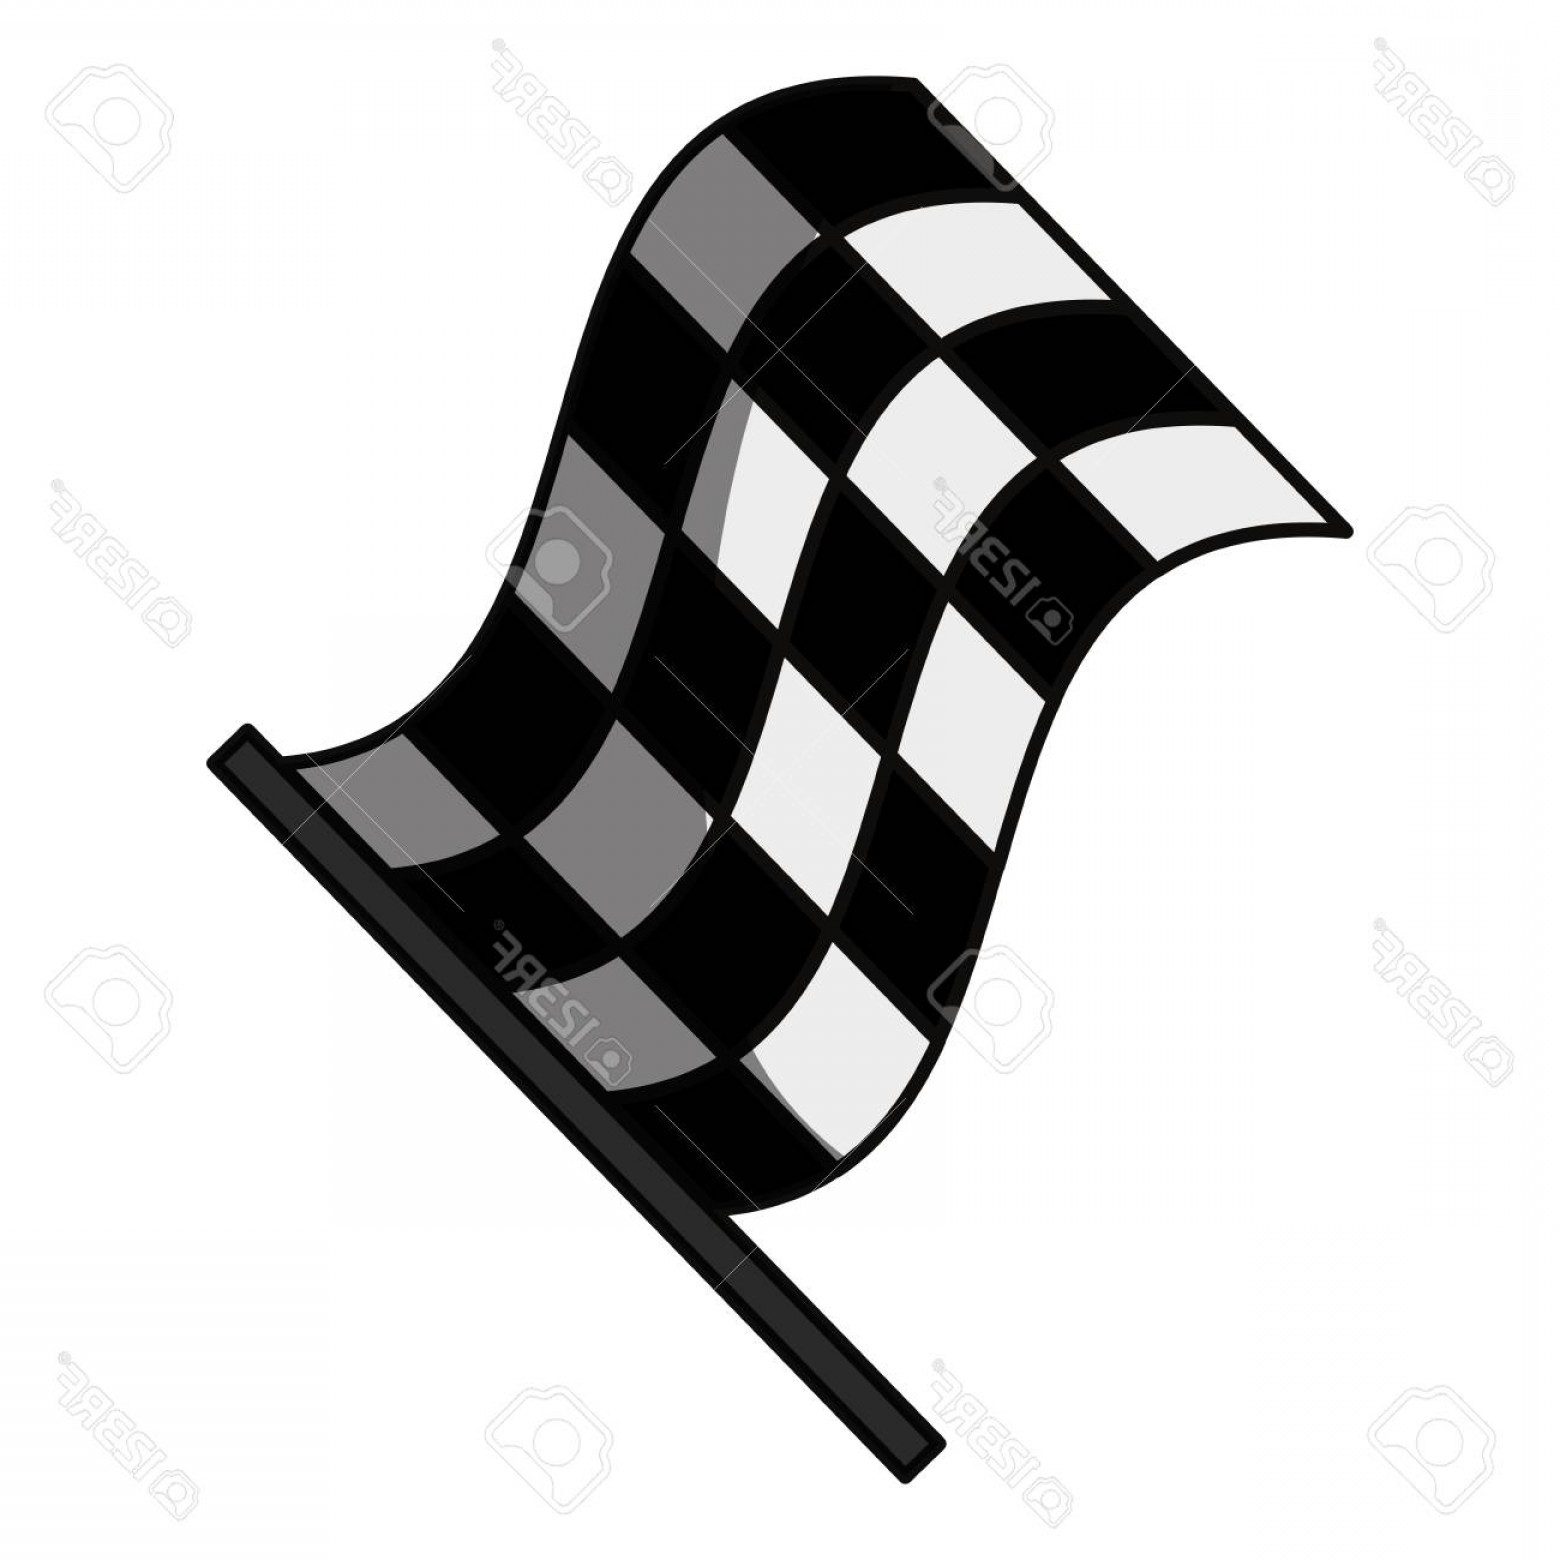 Black And White Vector Racing Graphics: Photostock Vector Racing Flas Isolated Icon Vector Illustration Graphic Design